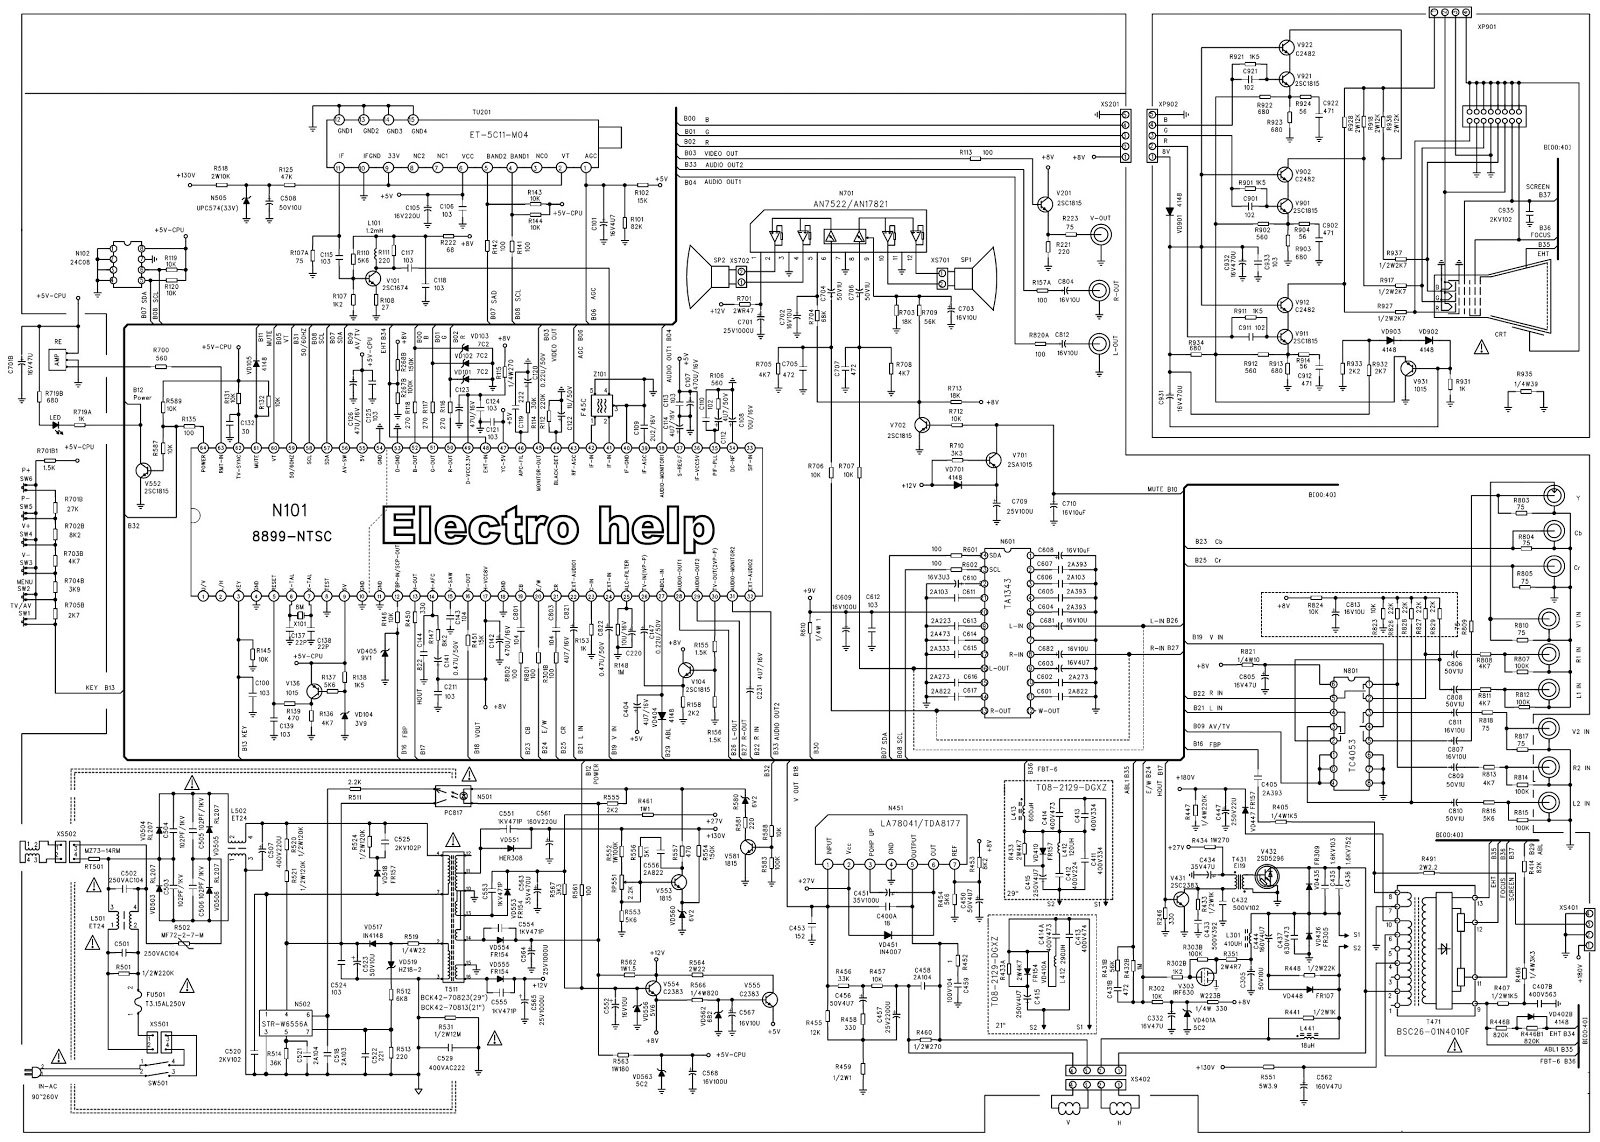 Tv Circuit Diagram Electronic Schematic Wiring Data Board Diagrams Smart U2022 Rh Emgsolutions Co Basic Electric Schematics Simple